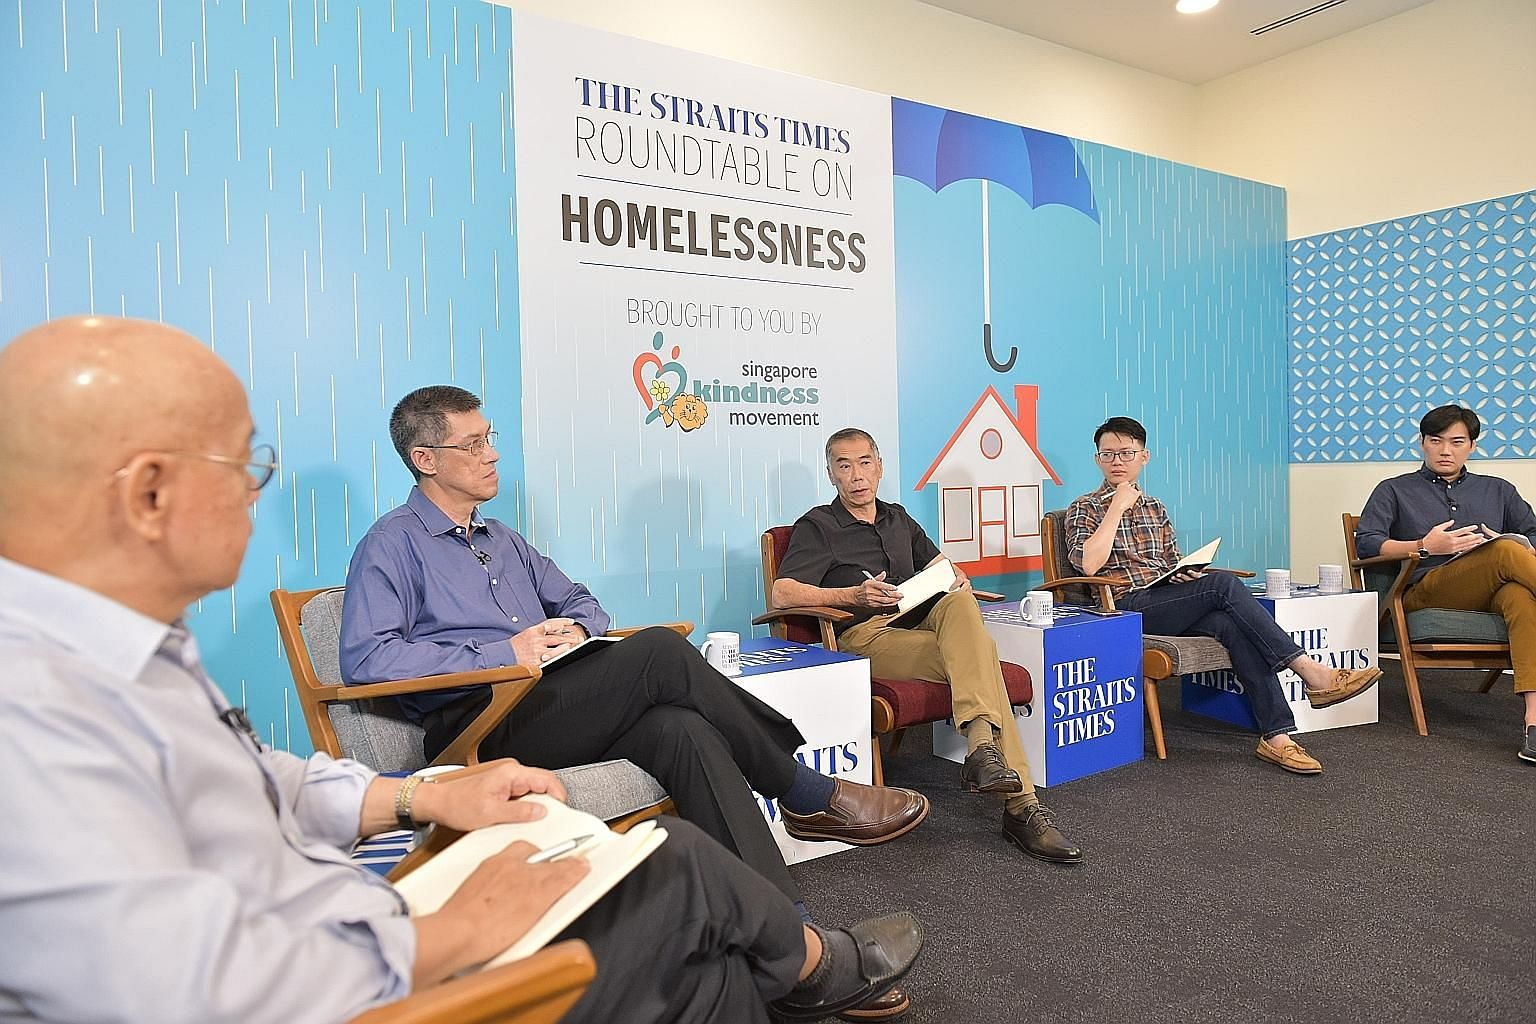 (From left) Dr William Wan, general secretary of the Singapore Kindness Movement, moderating the discussion by the panel, which included Mr Lee Kim Hua, a senior director from the Ministry of Social and Family Development; Pastor Andrew Khoo from New